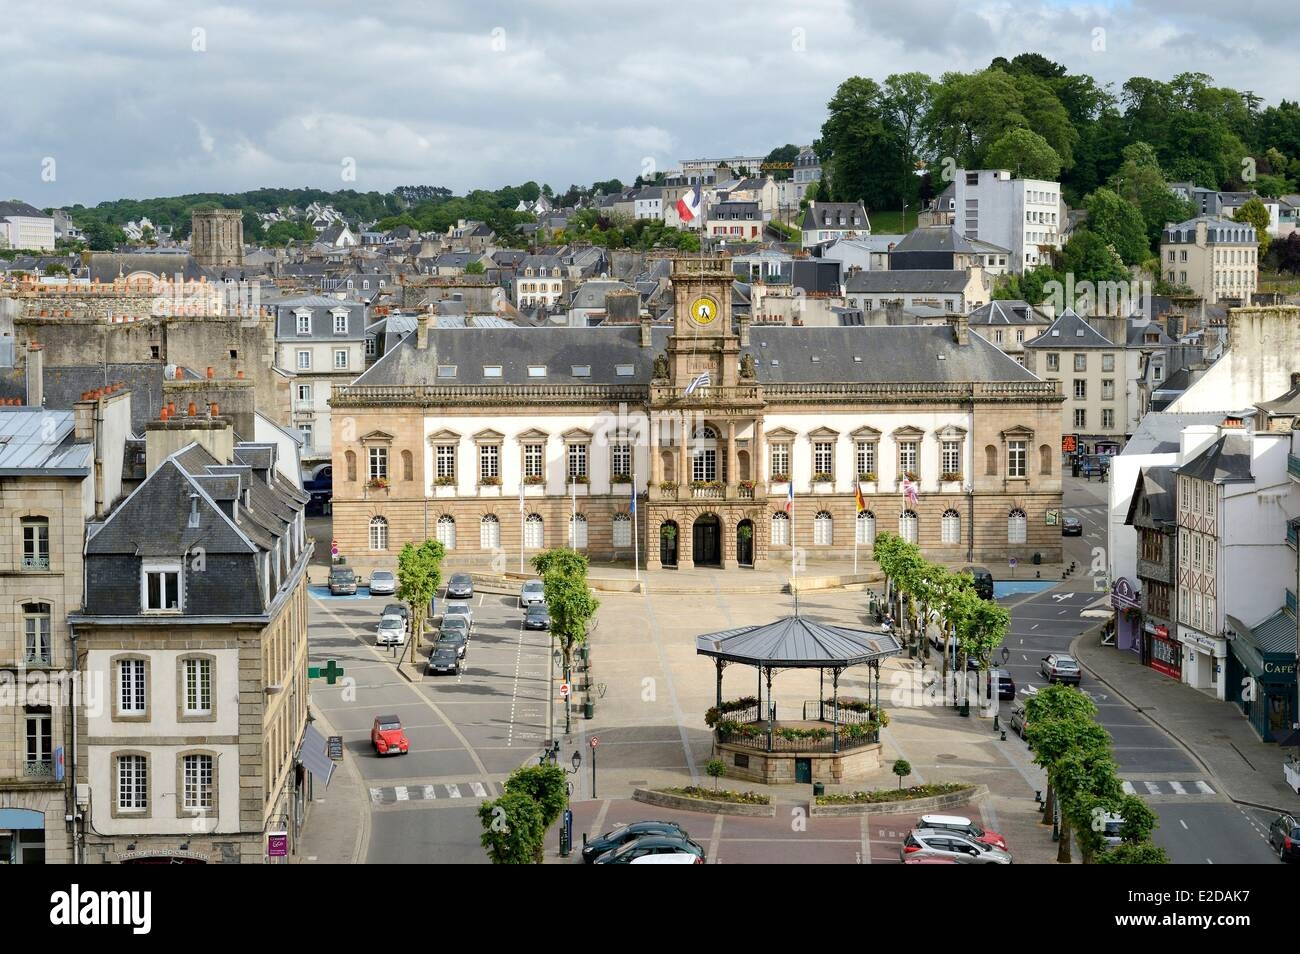 France Finistere Morlaix the city hall on the place des Otages and the Kiosk of 1903 - Stock Image